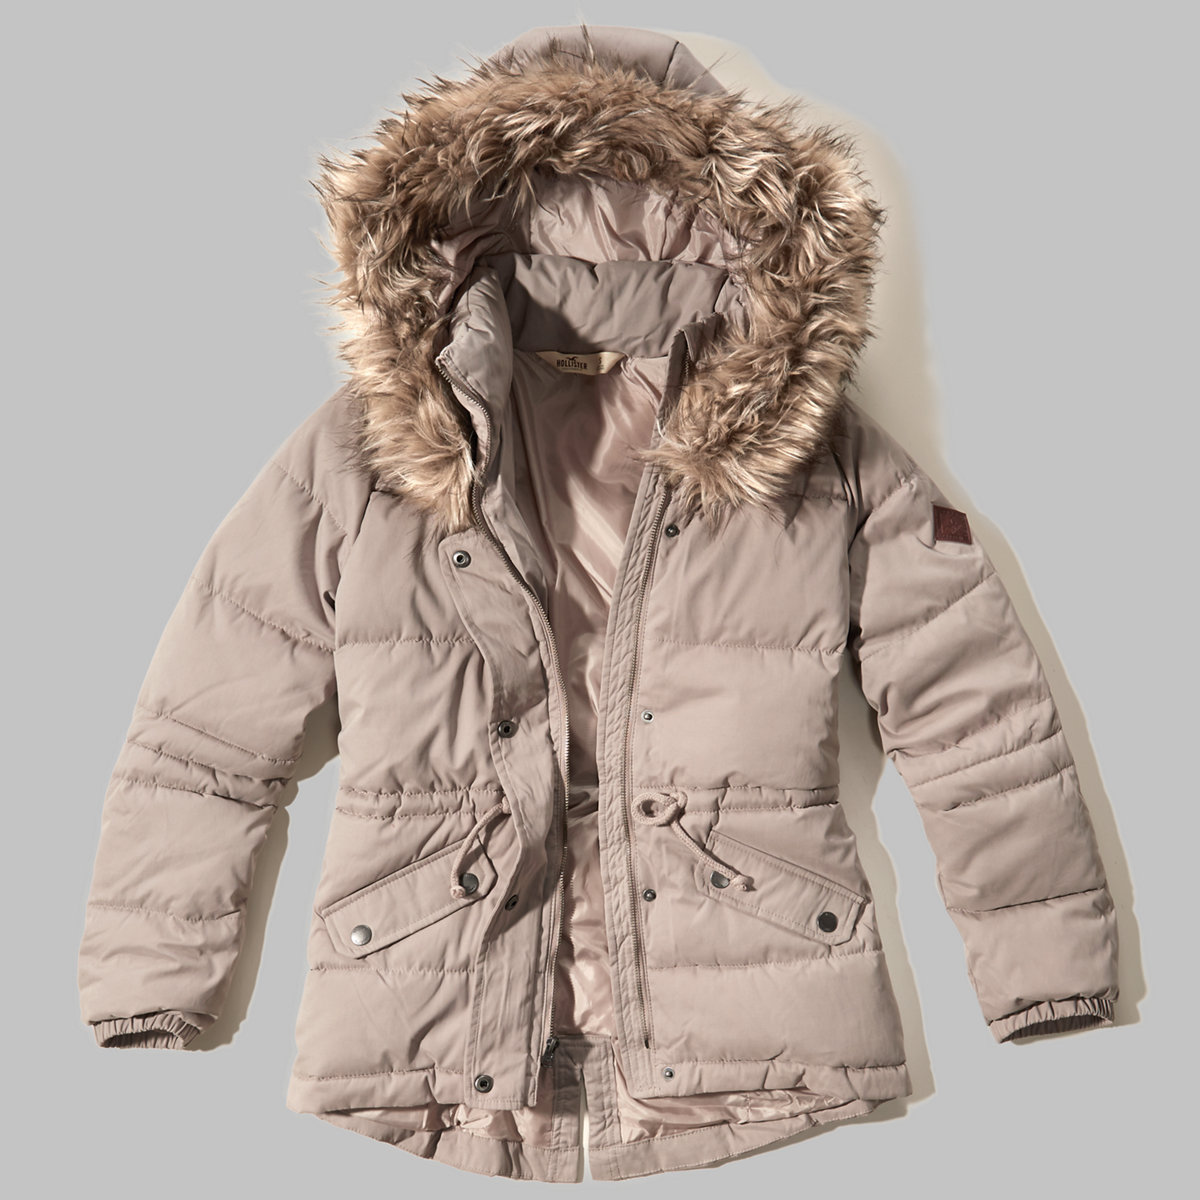 Elevated Puffer Jacket